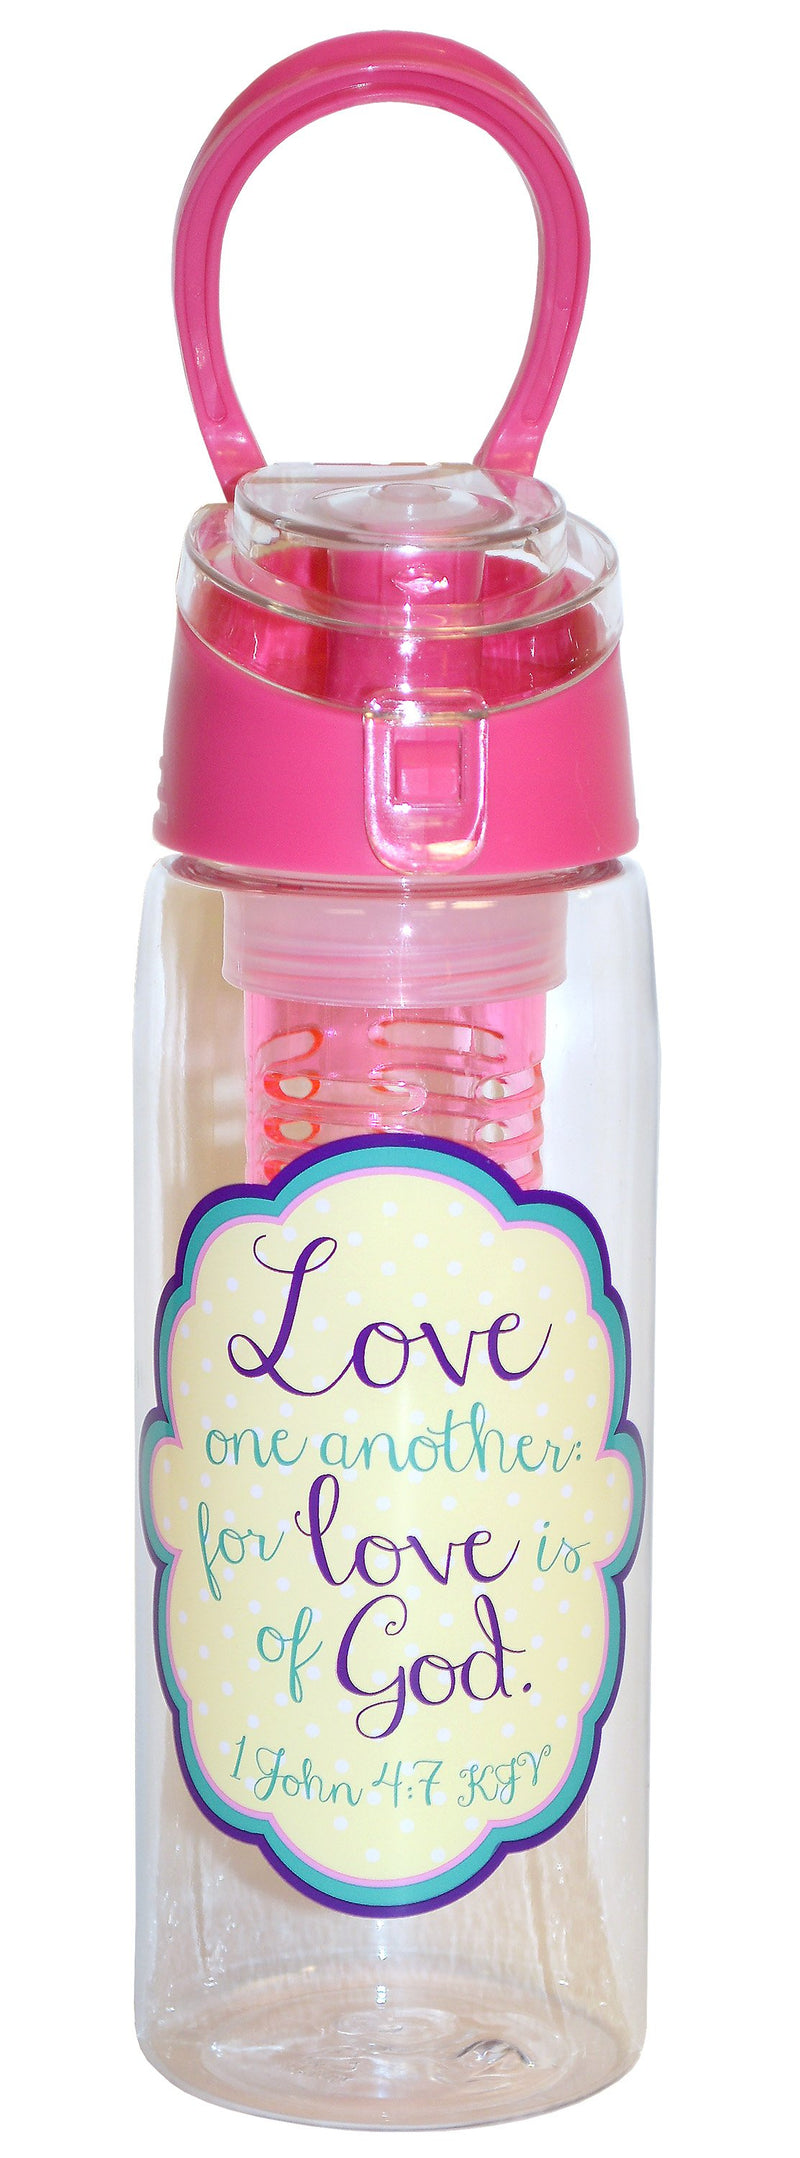 Divinity Boutique Infused Water Bottles - Pink - Love One Another